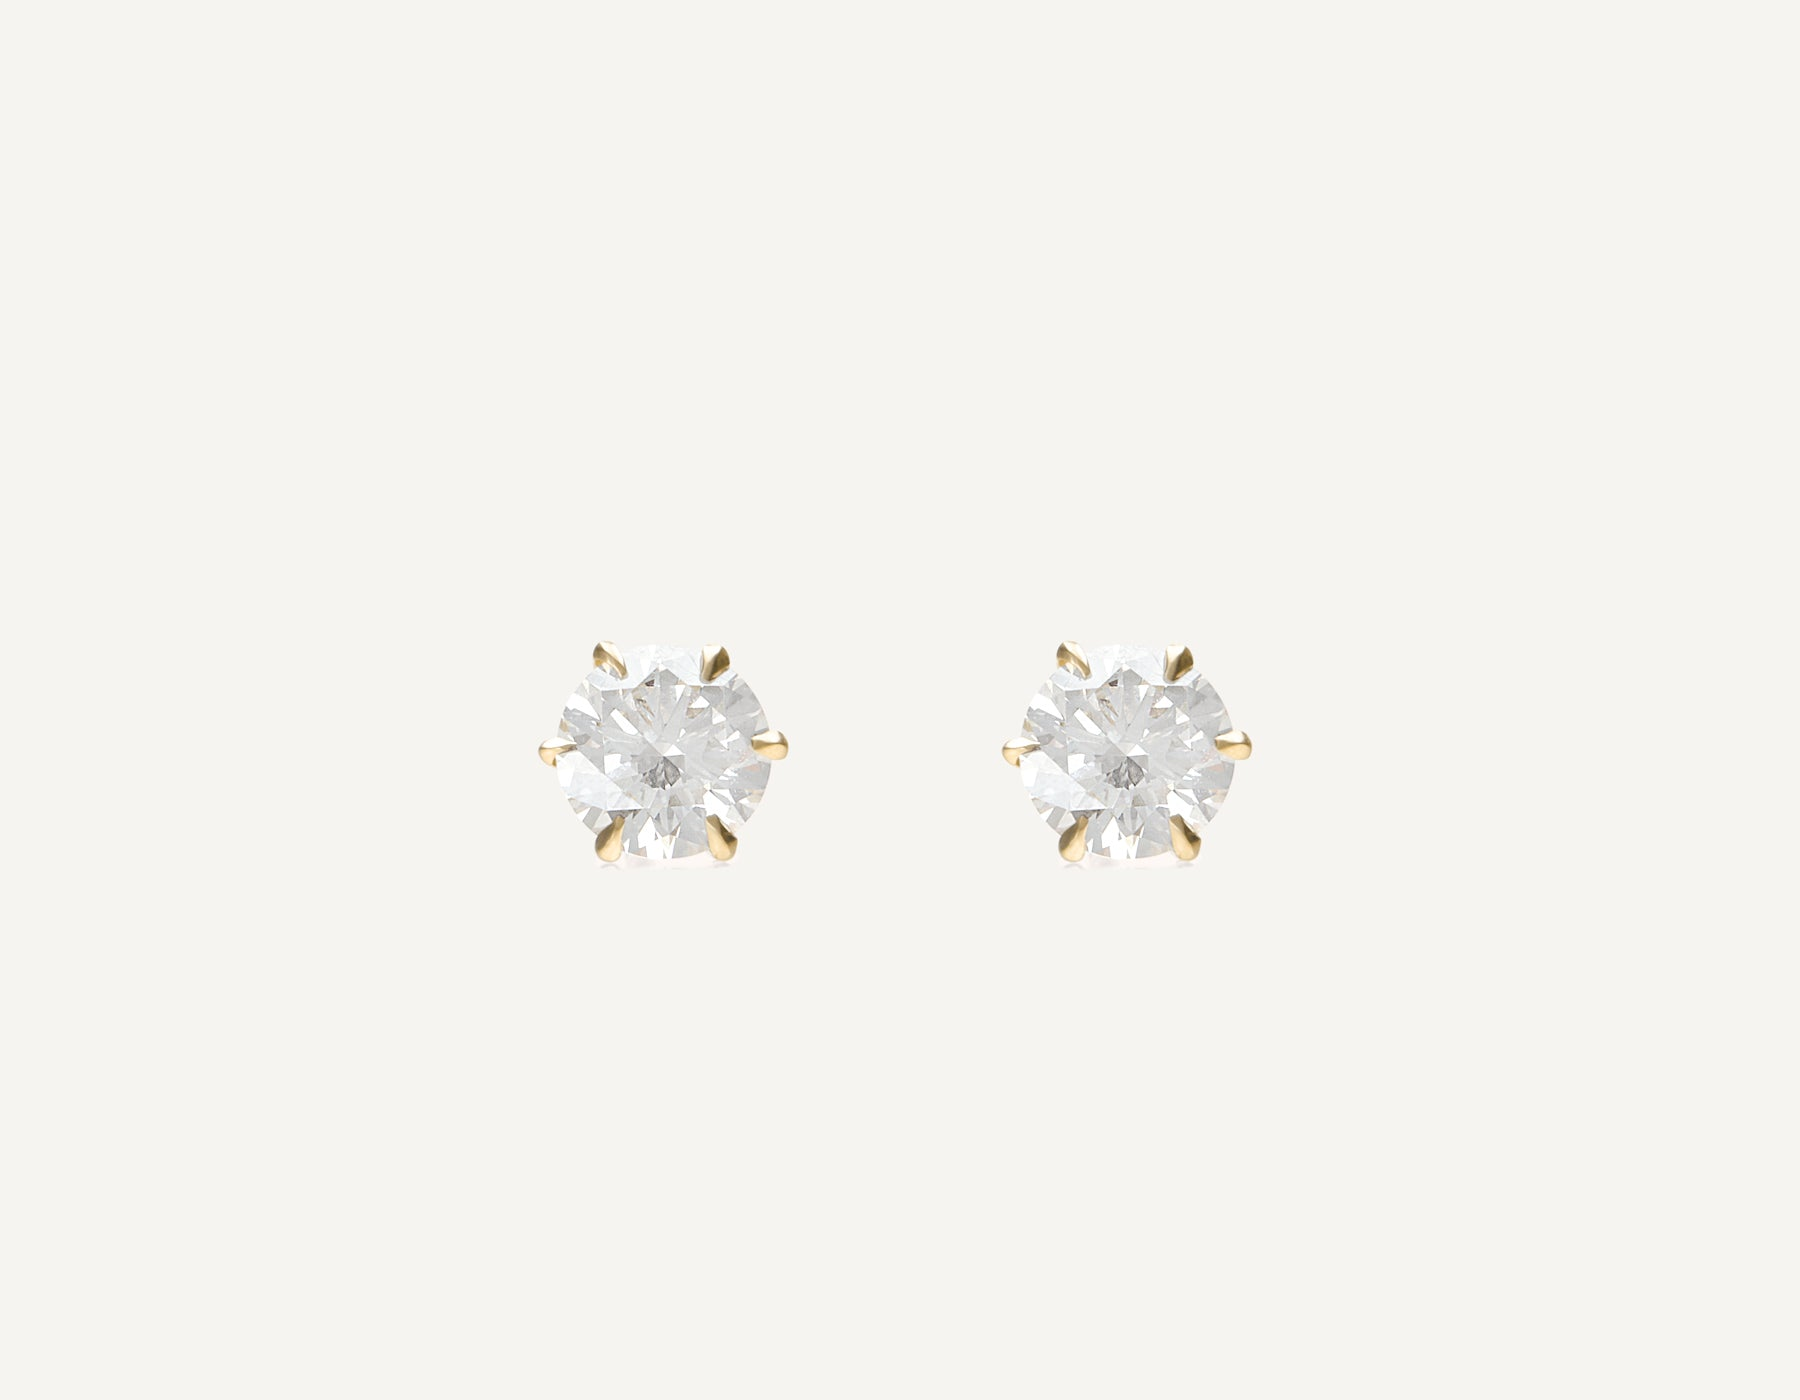 simple classic 18k solid gold 1.0 ct Round Brilliant Diamond Studs earring by Vrai and Oro, 18K Yellow Gold